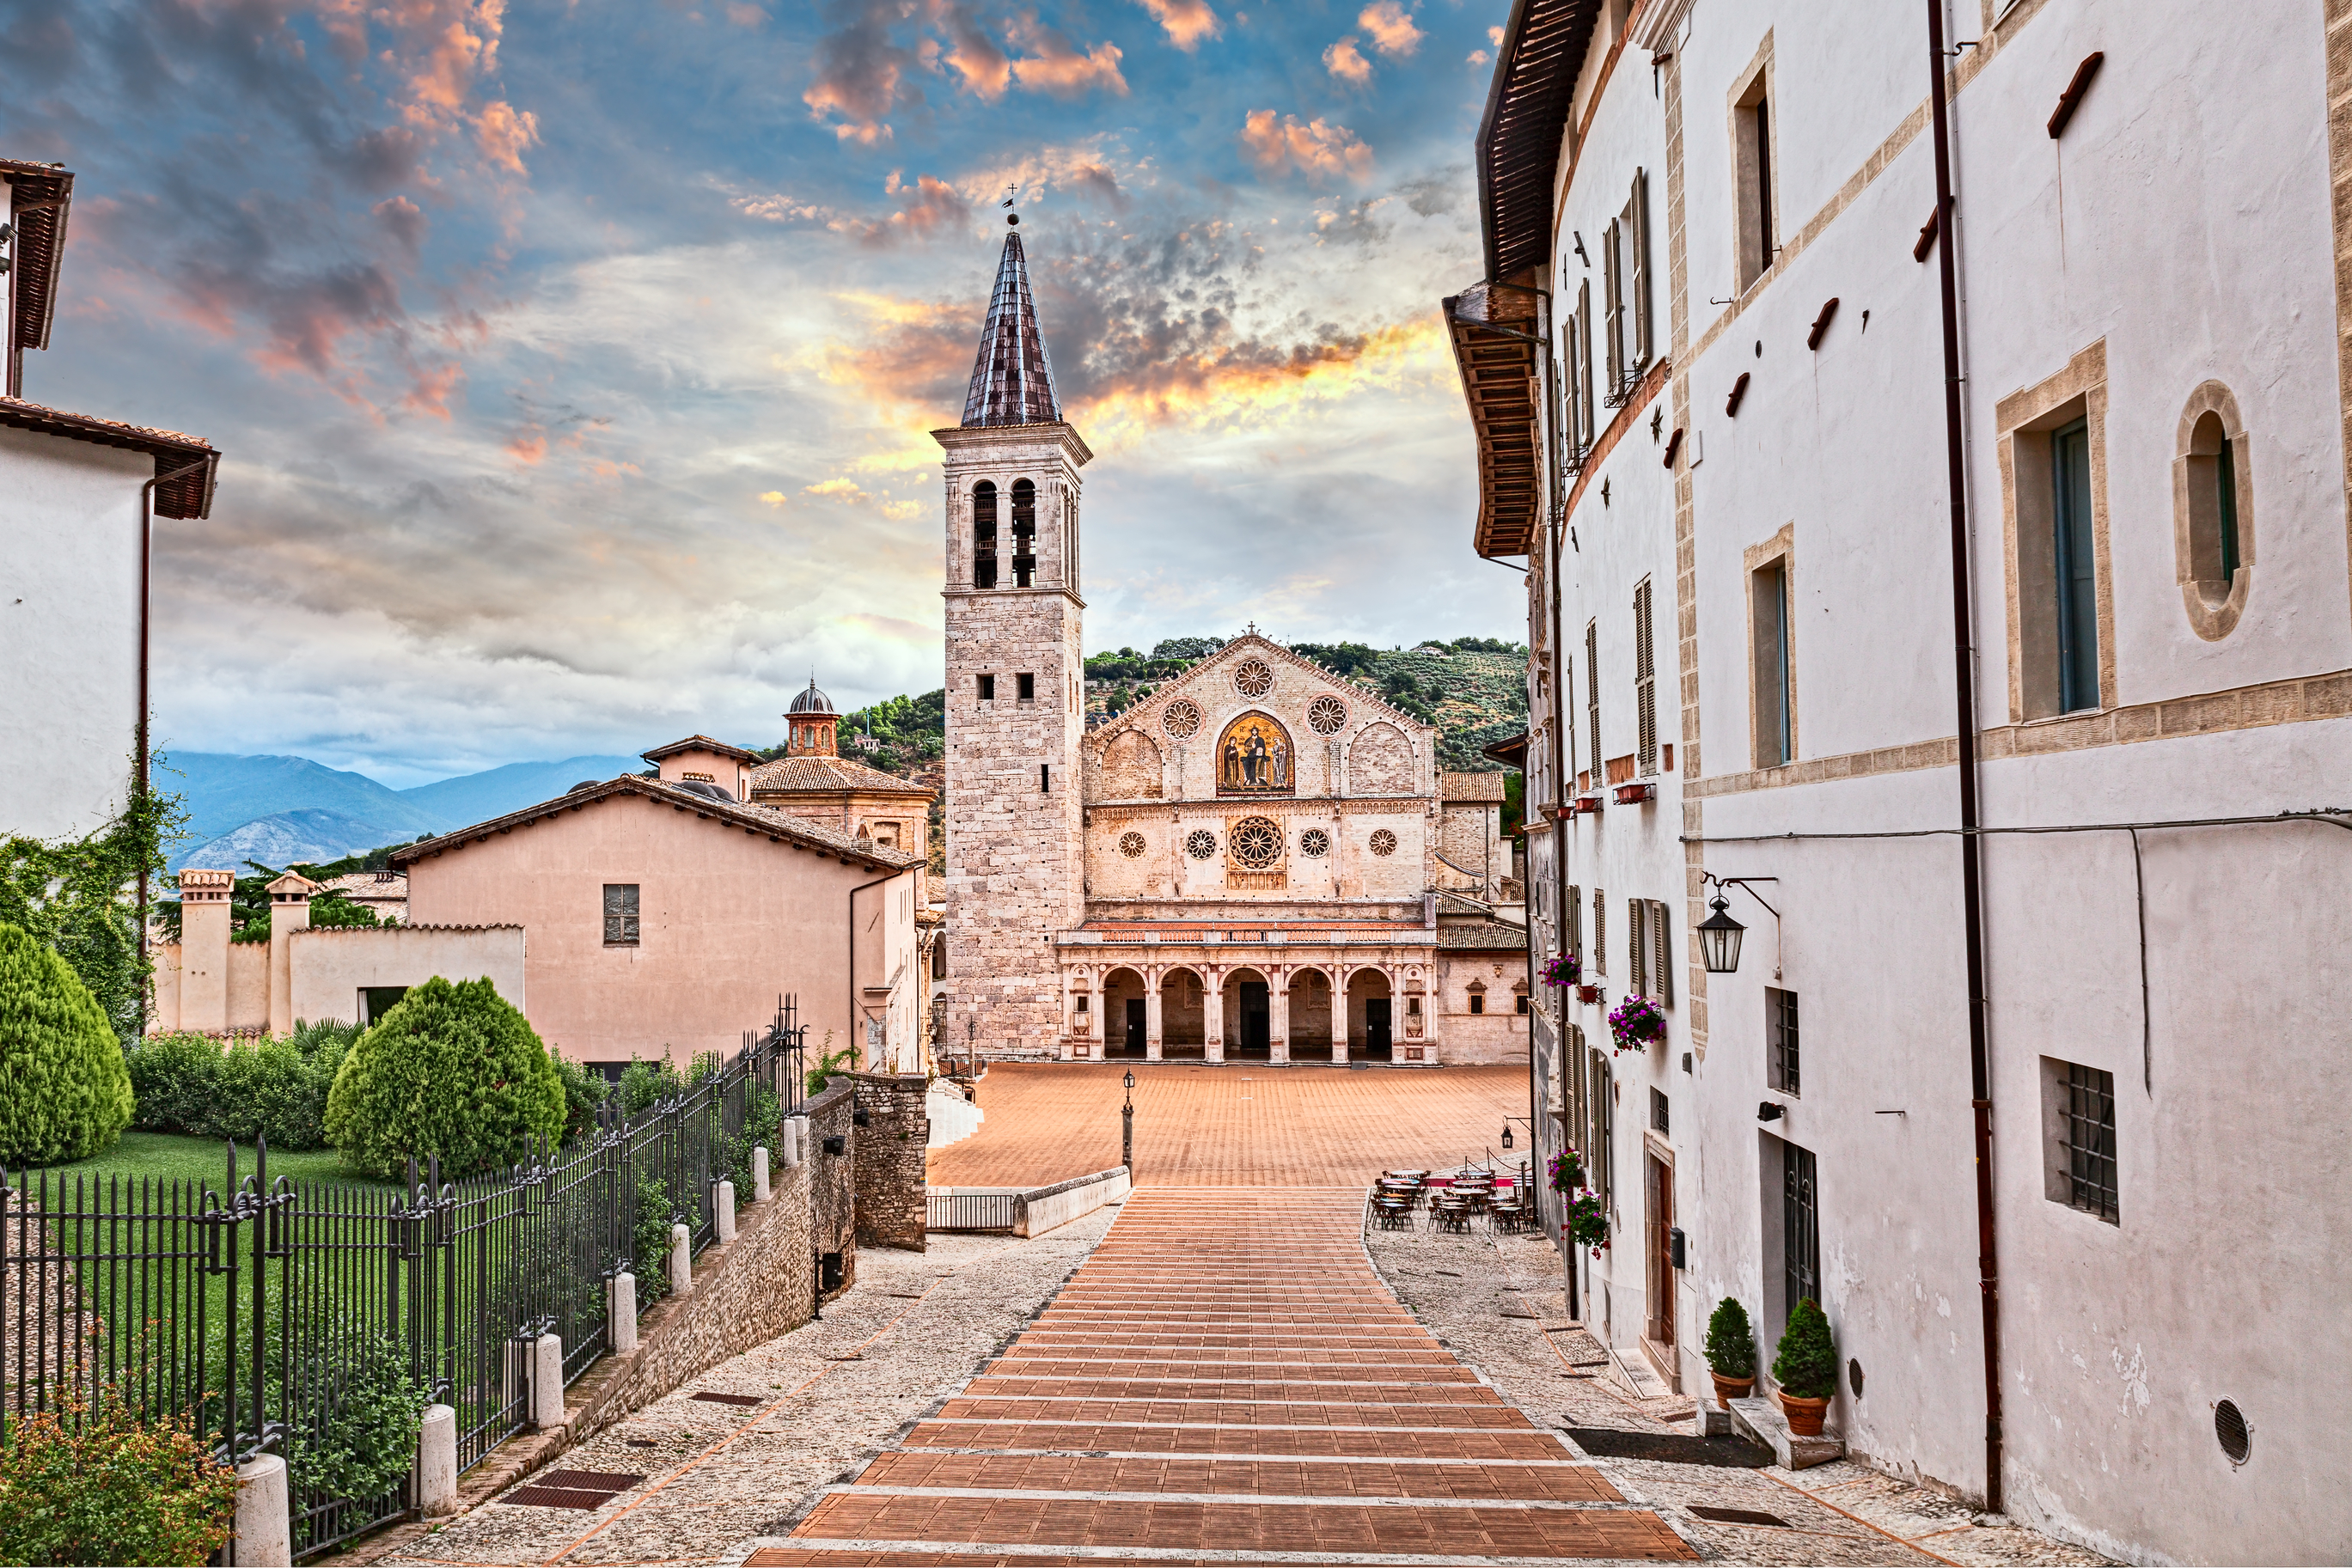 Italy-town-umbria.jpg?mtime=20190107211544#asset:104371